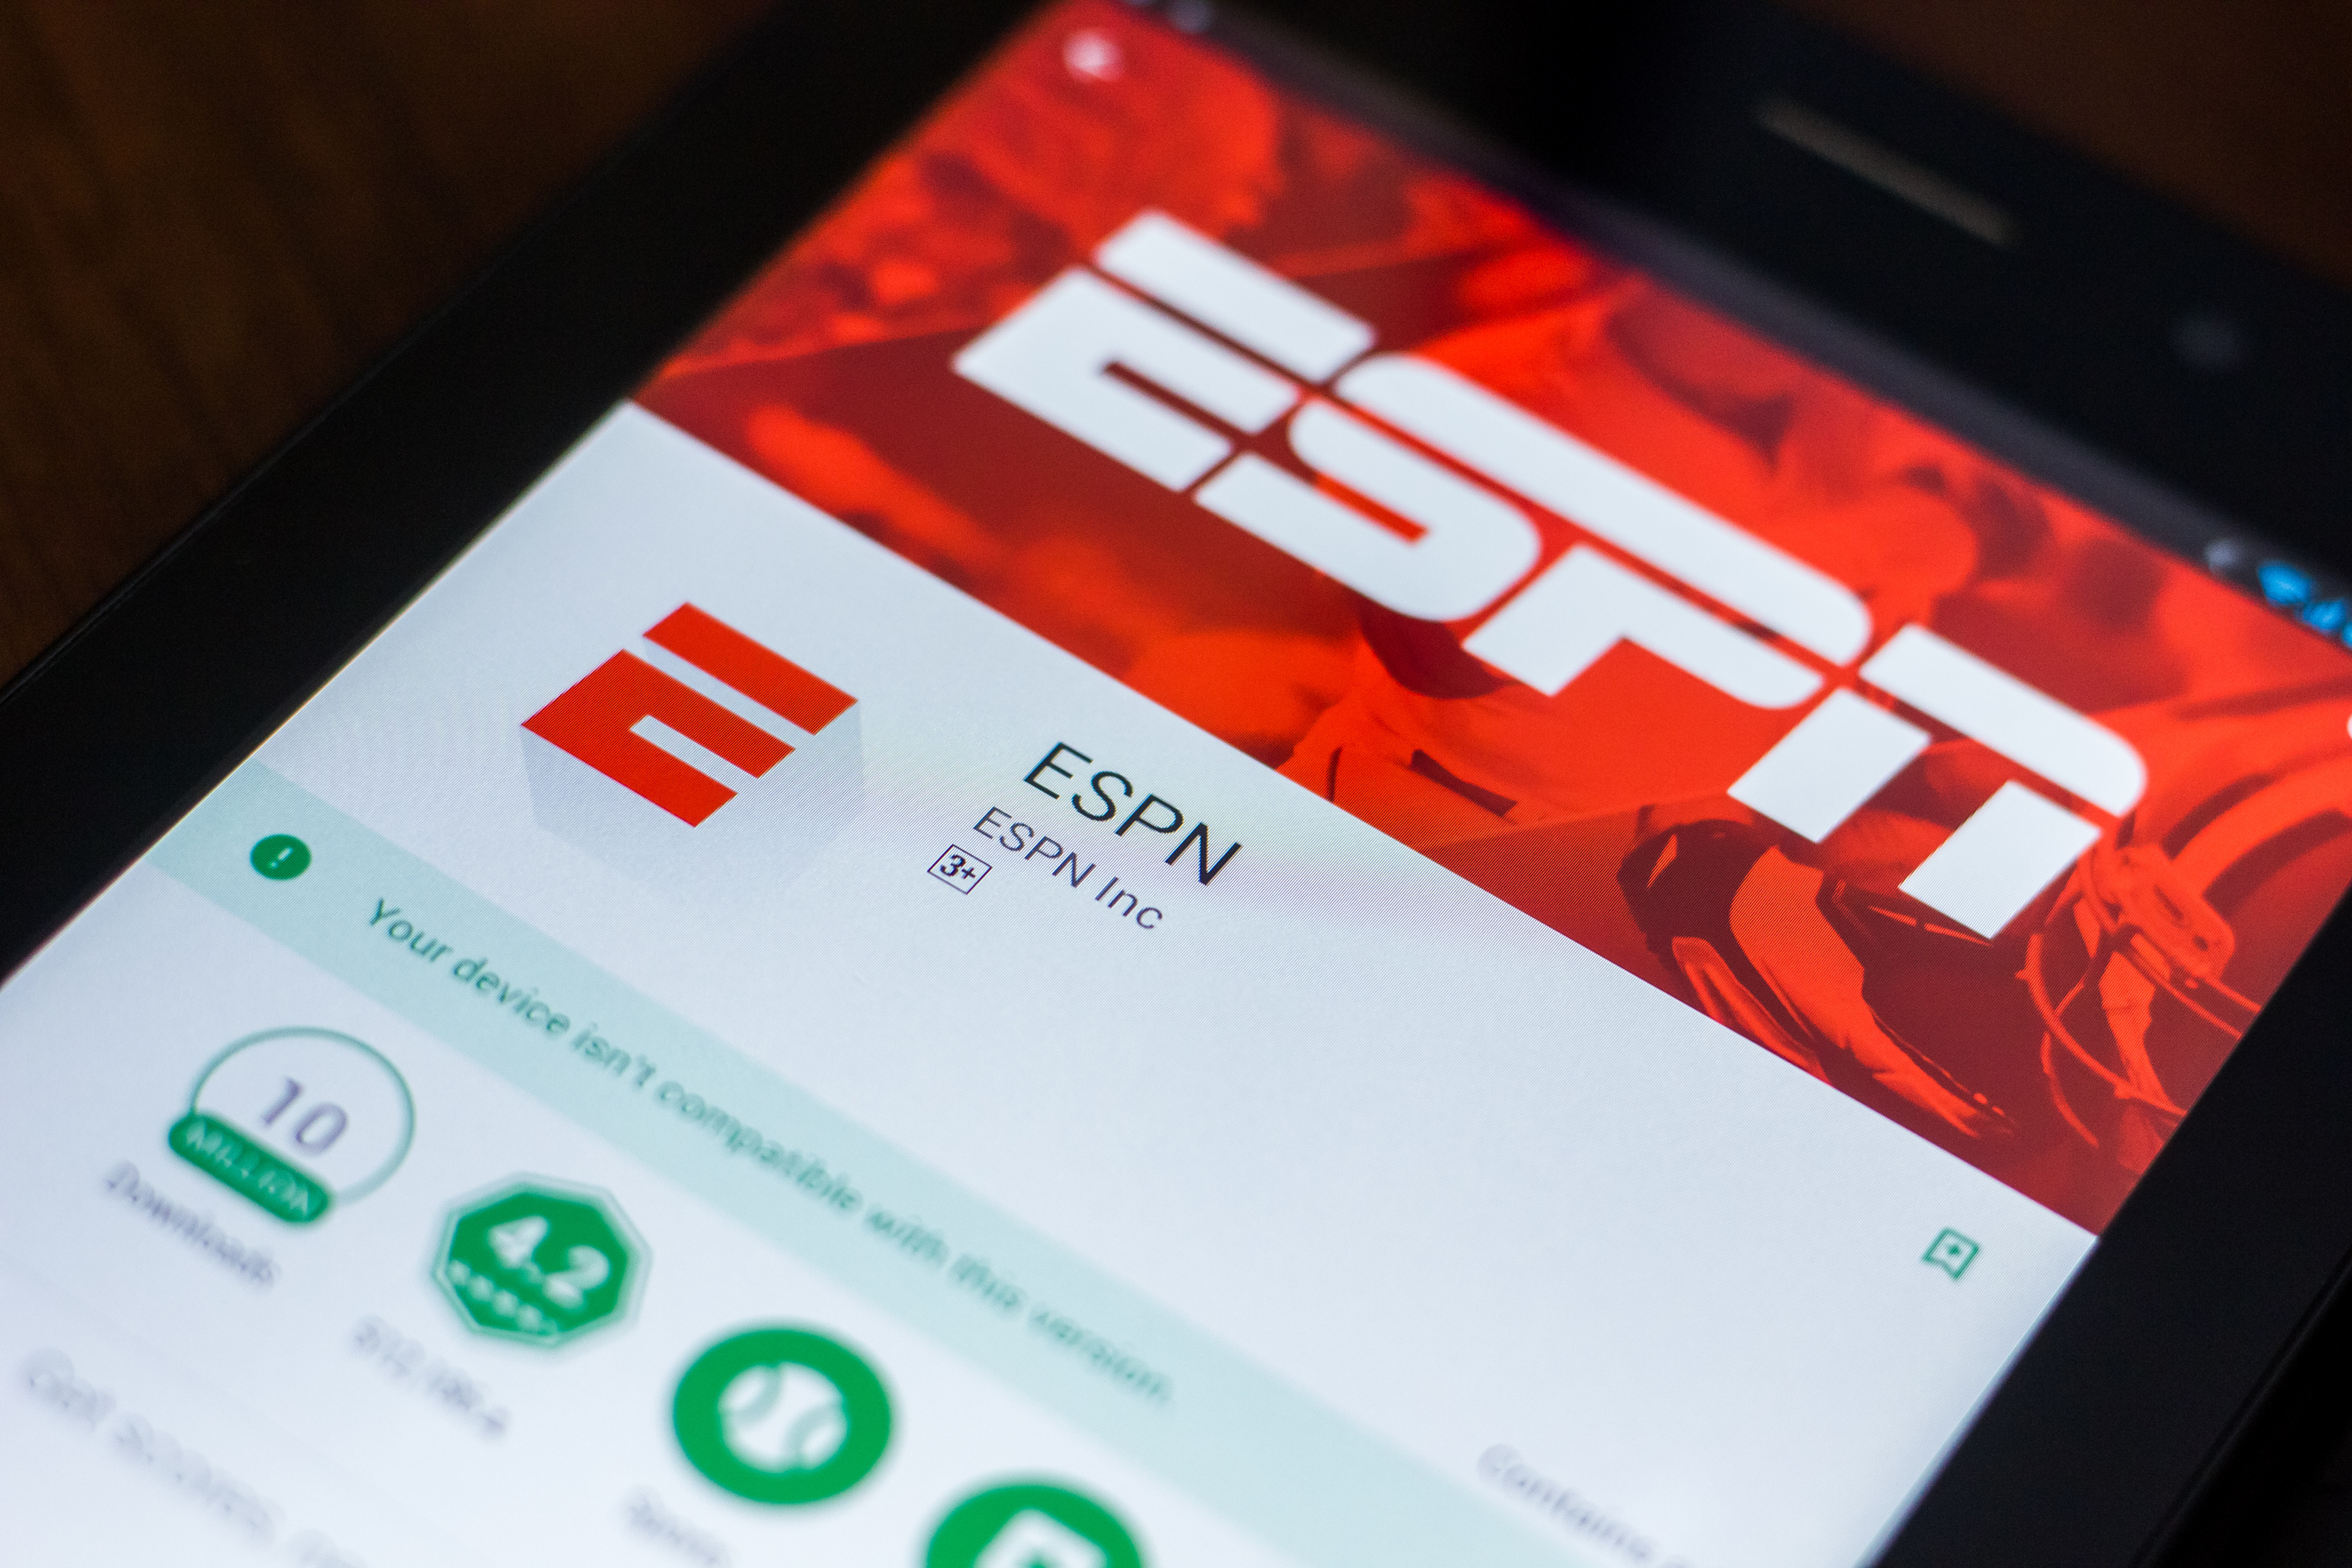 Espn betting app boxing betting lines matchups and odds